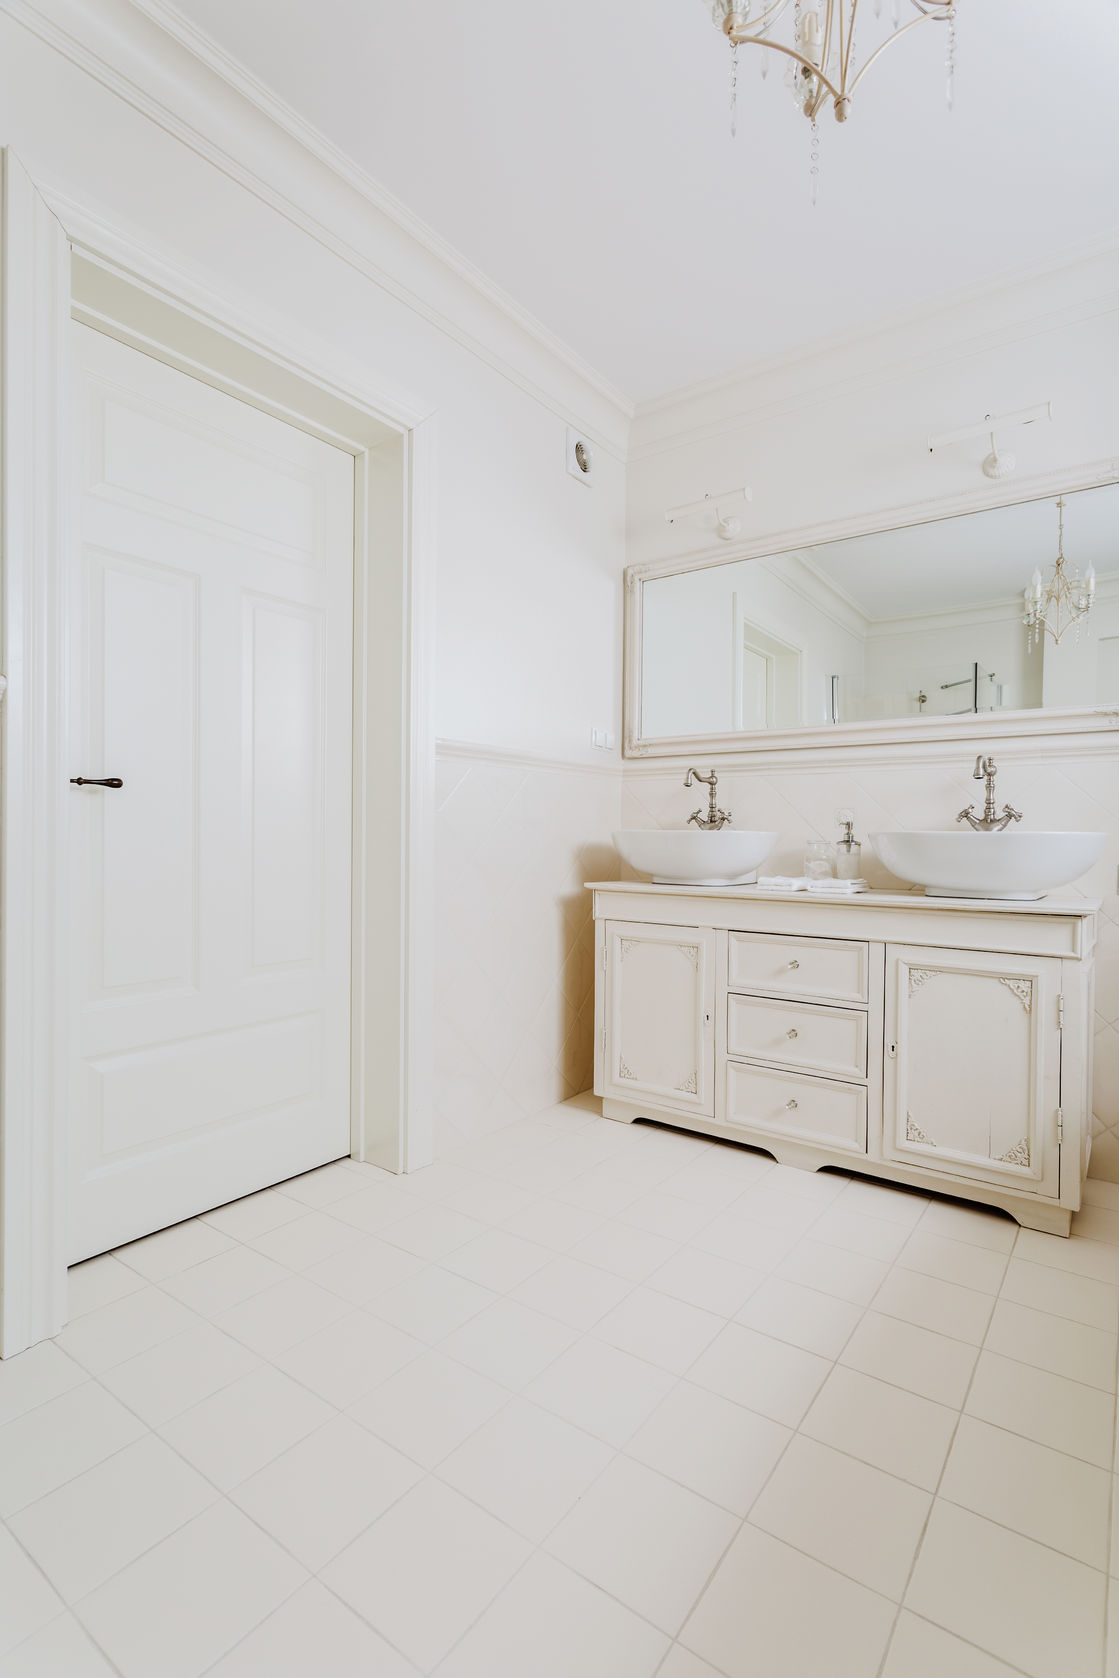 Bathrooms - L.A Xtreme Remodeling